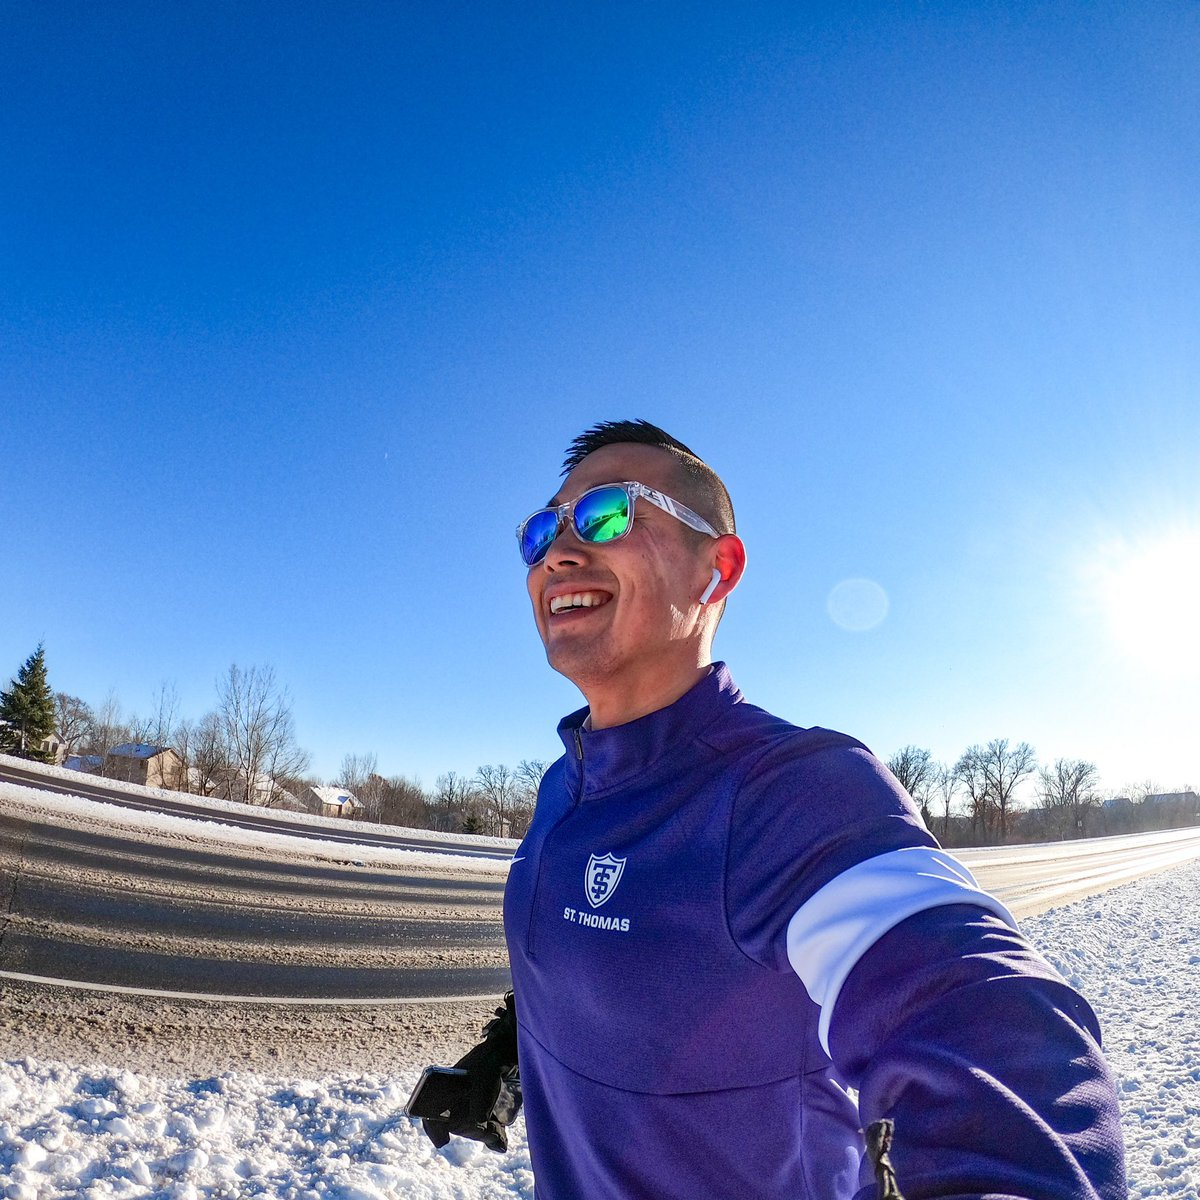 Taking in some vitamin D the best way I know how! #runtheyear #sunshine #happiness https://t.co/uzT2OyS2sp